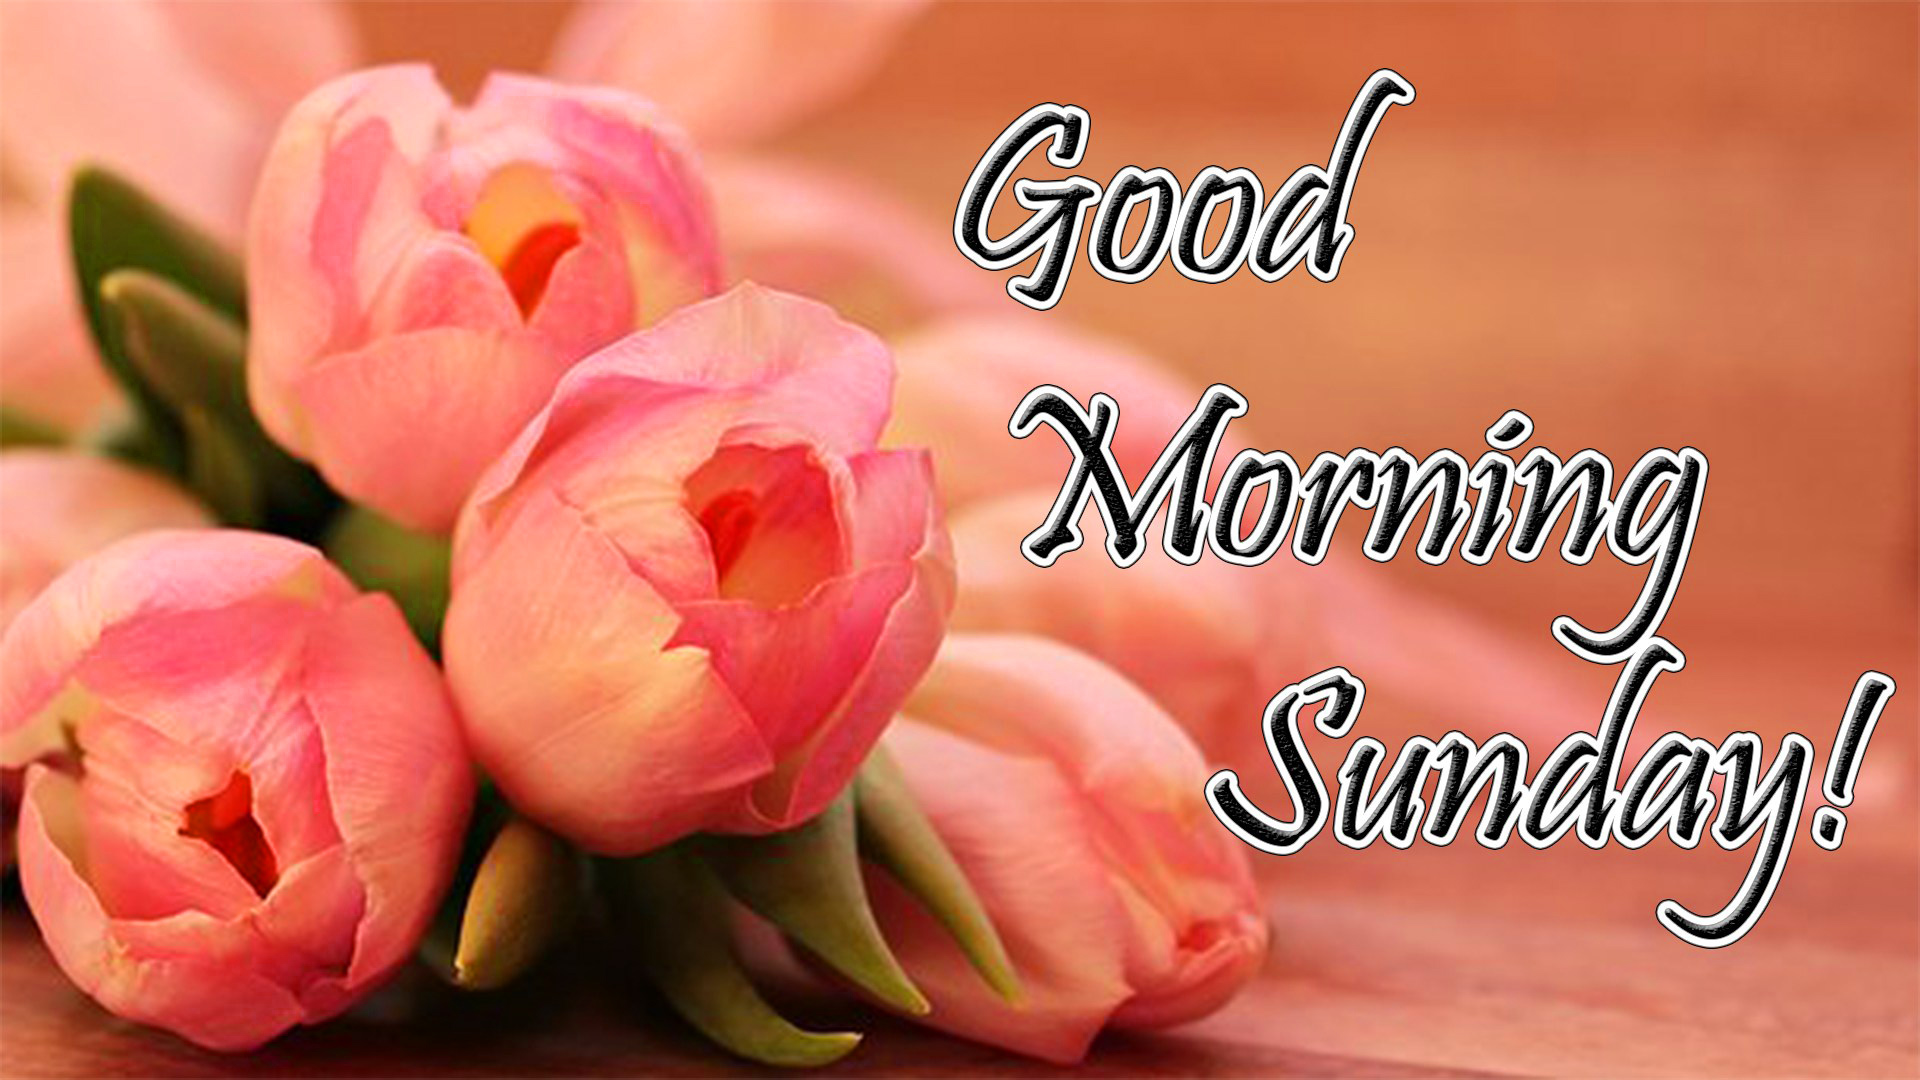 Sunday good morning Images HD Download